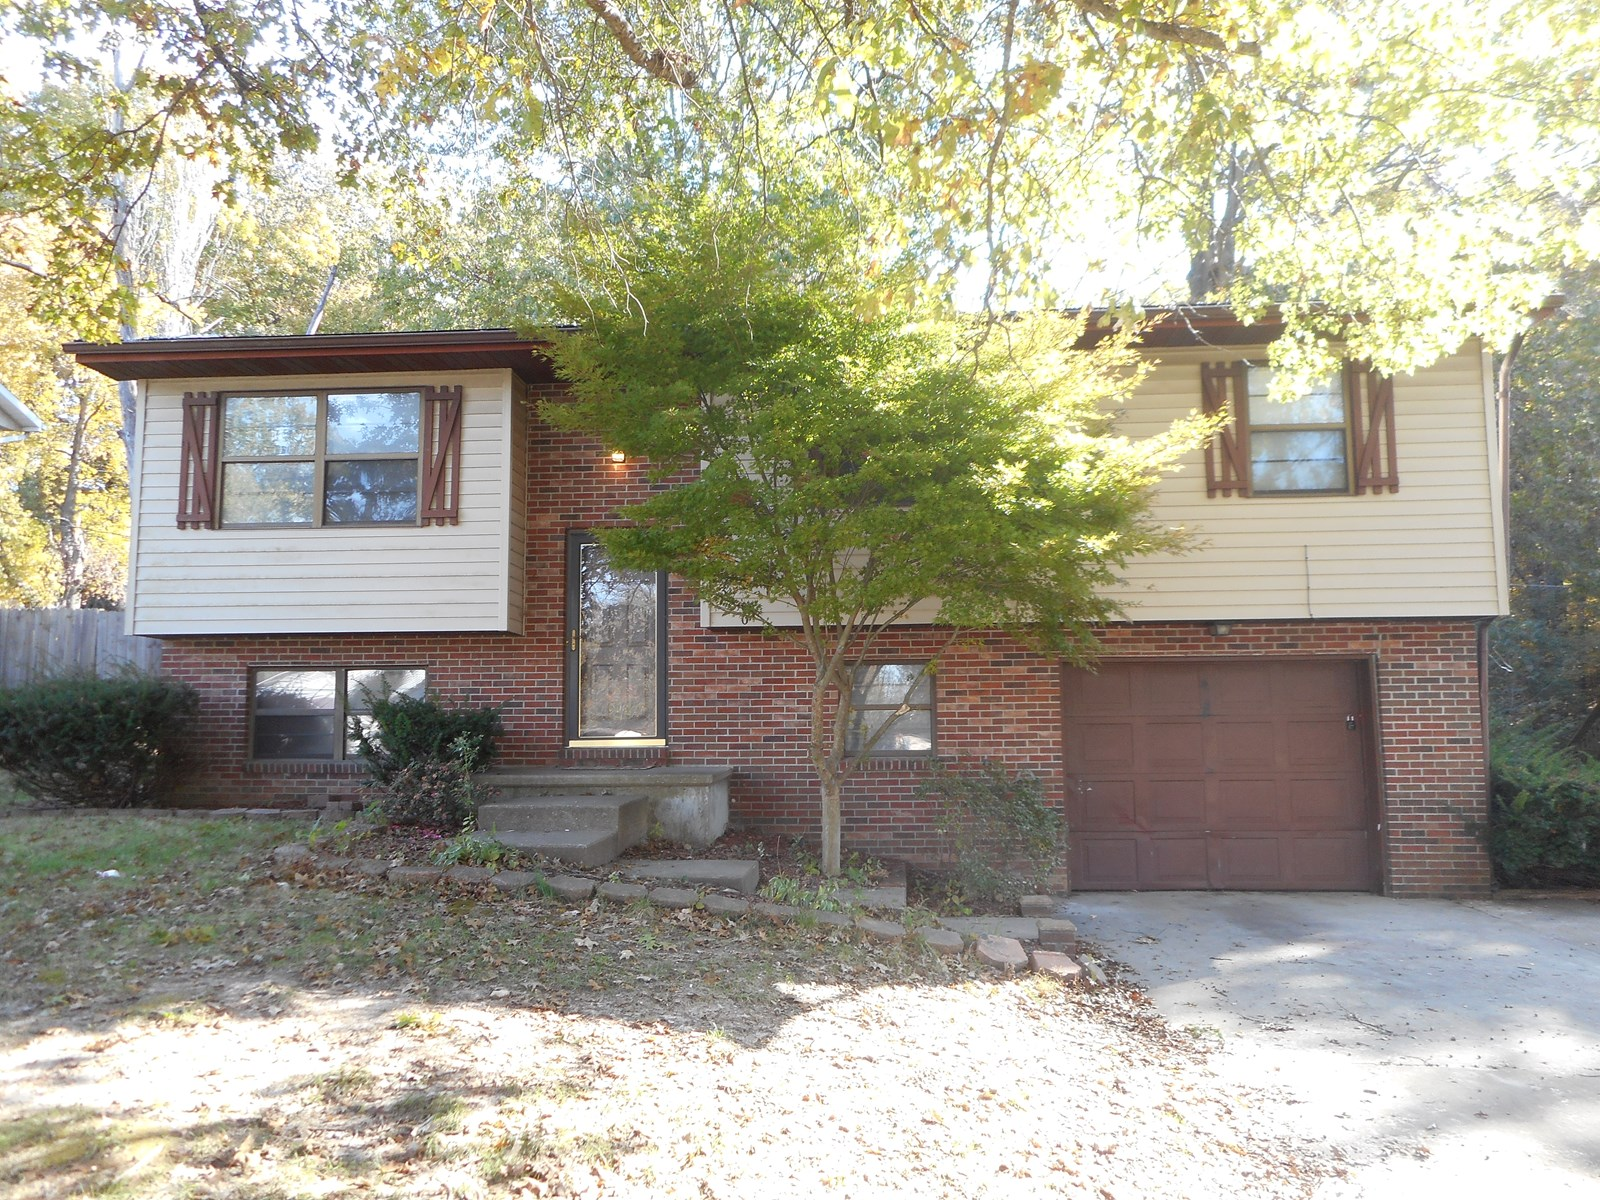 For Sale 3 bedroom 1.5 bath house in Jackson MO.